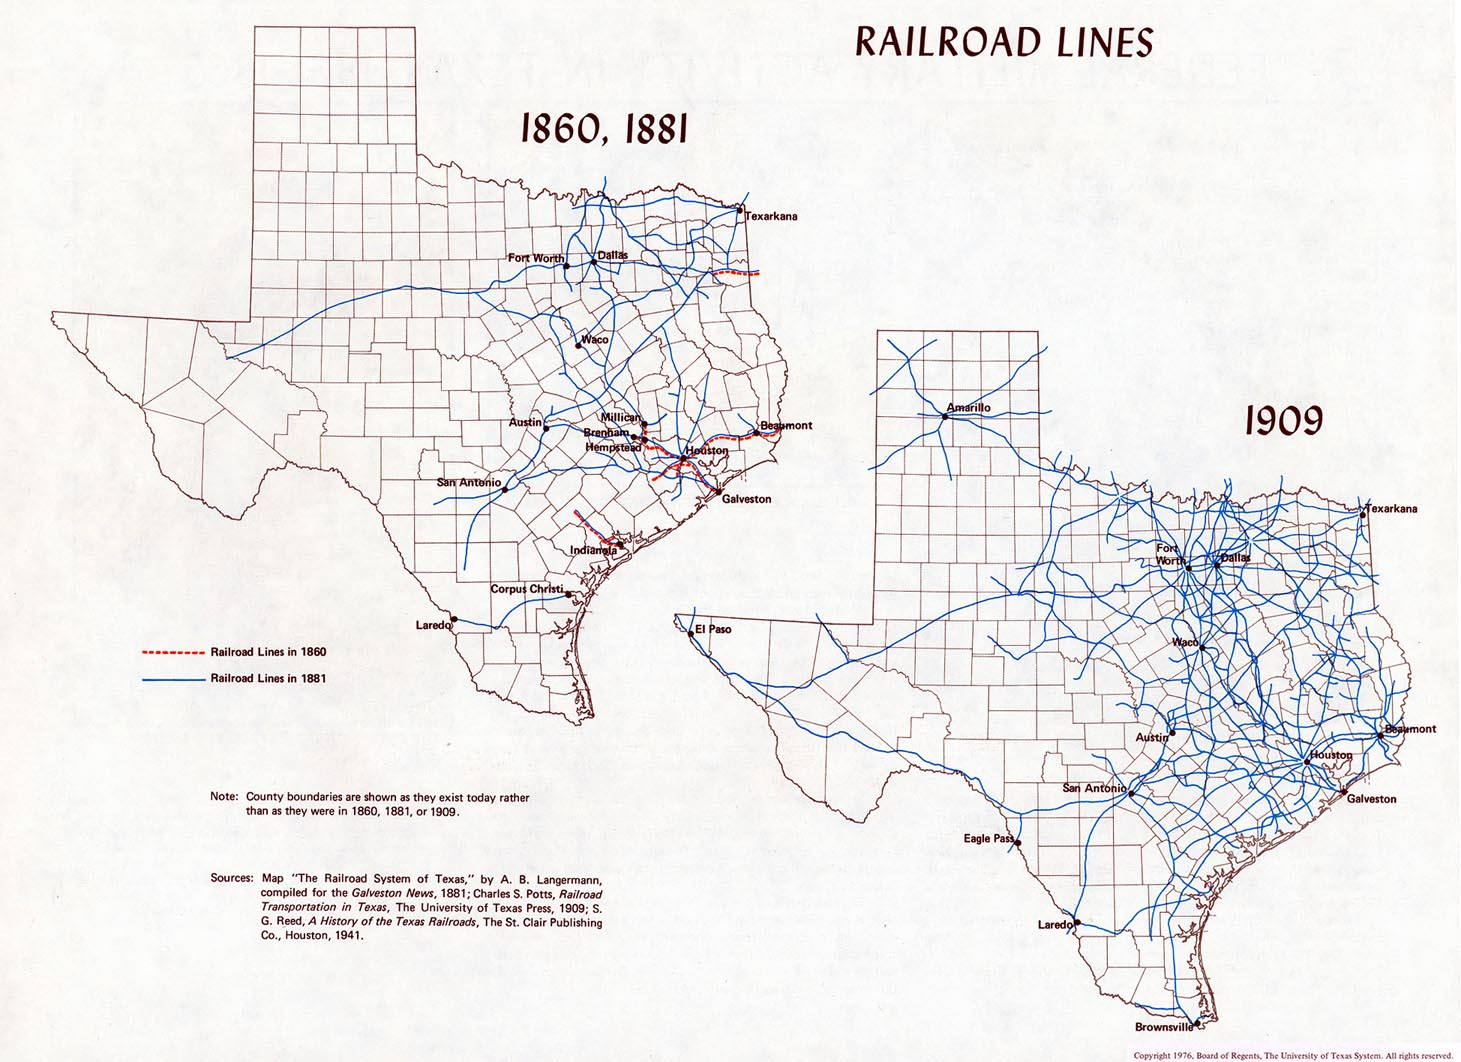 Atlas Of Texas Perry Castaeda Map Collection Ut Library Online Ball Mill Schematic For Pinterest 55 Railroad Lines 1860 1881 1909 2 Maps